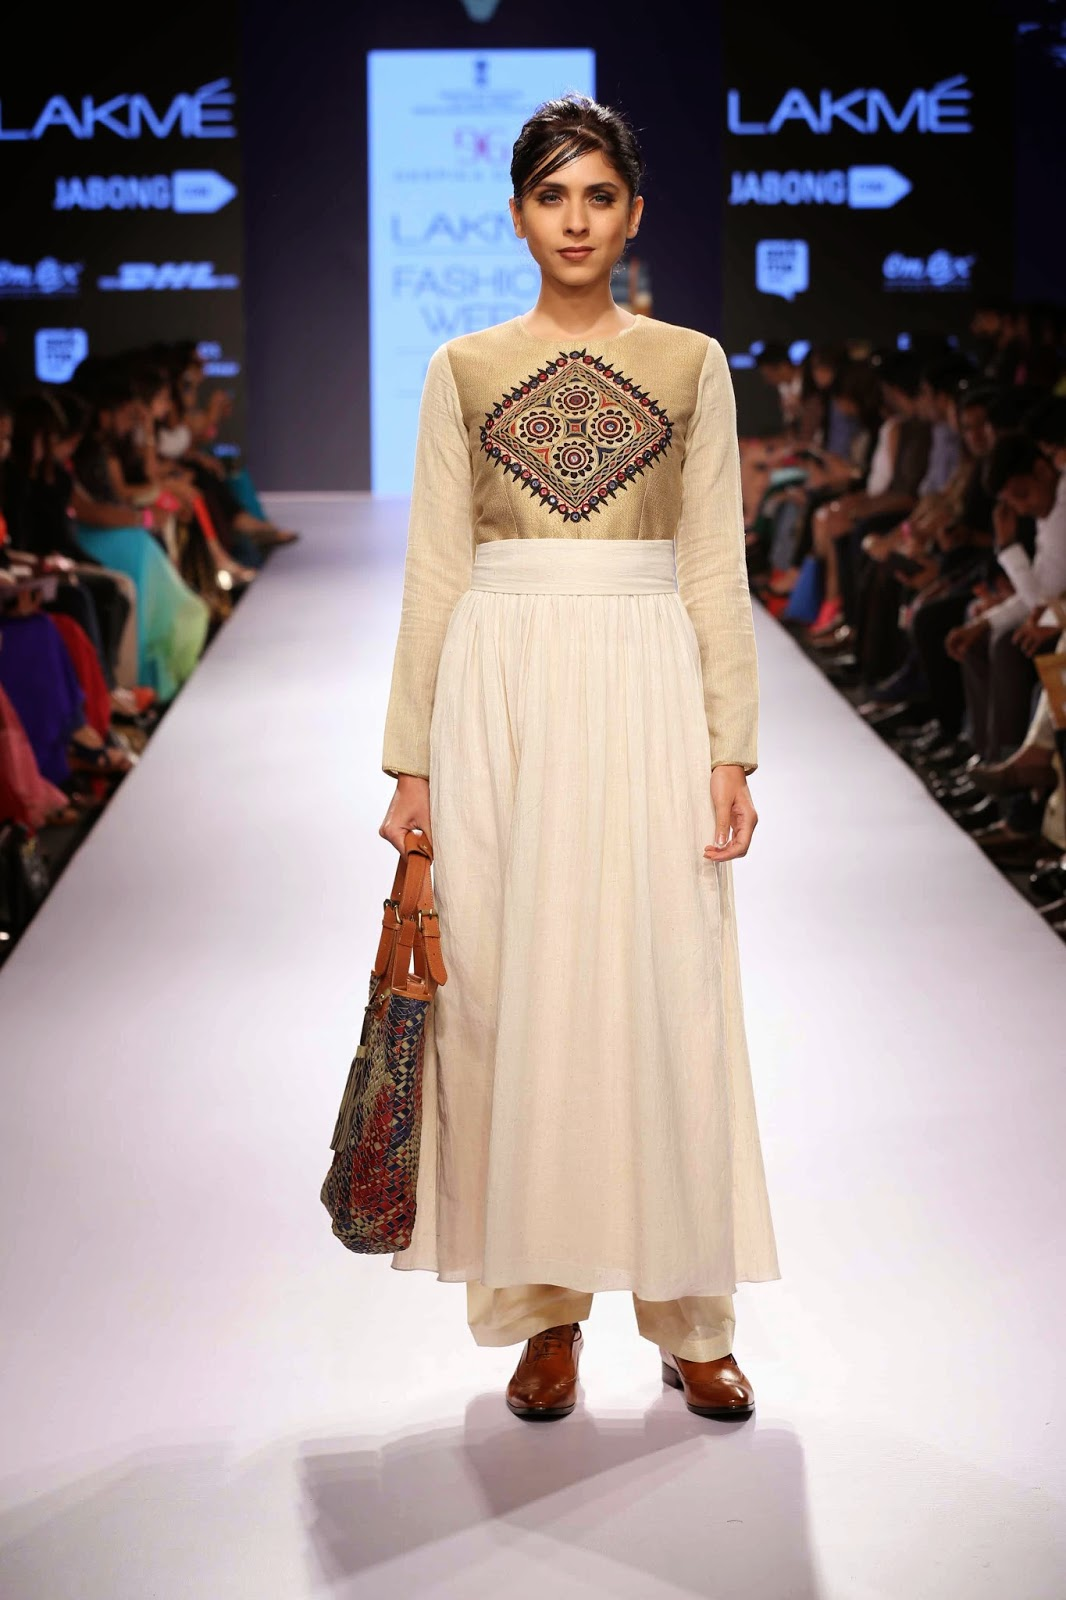 http://aquaintperspective.blogspot.in/, LIFW Day 2 Deepika Govind